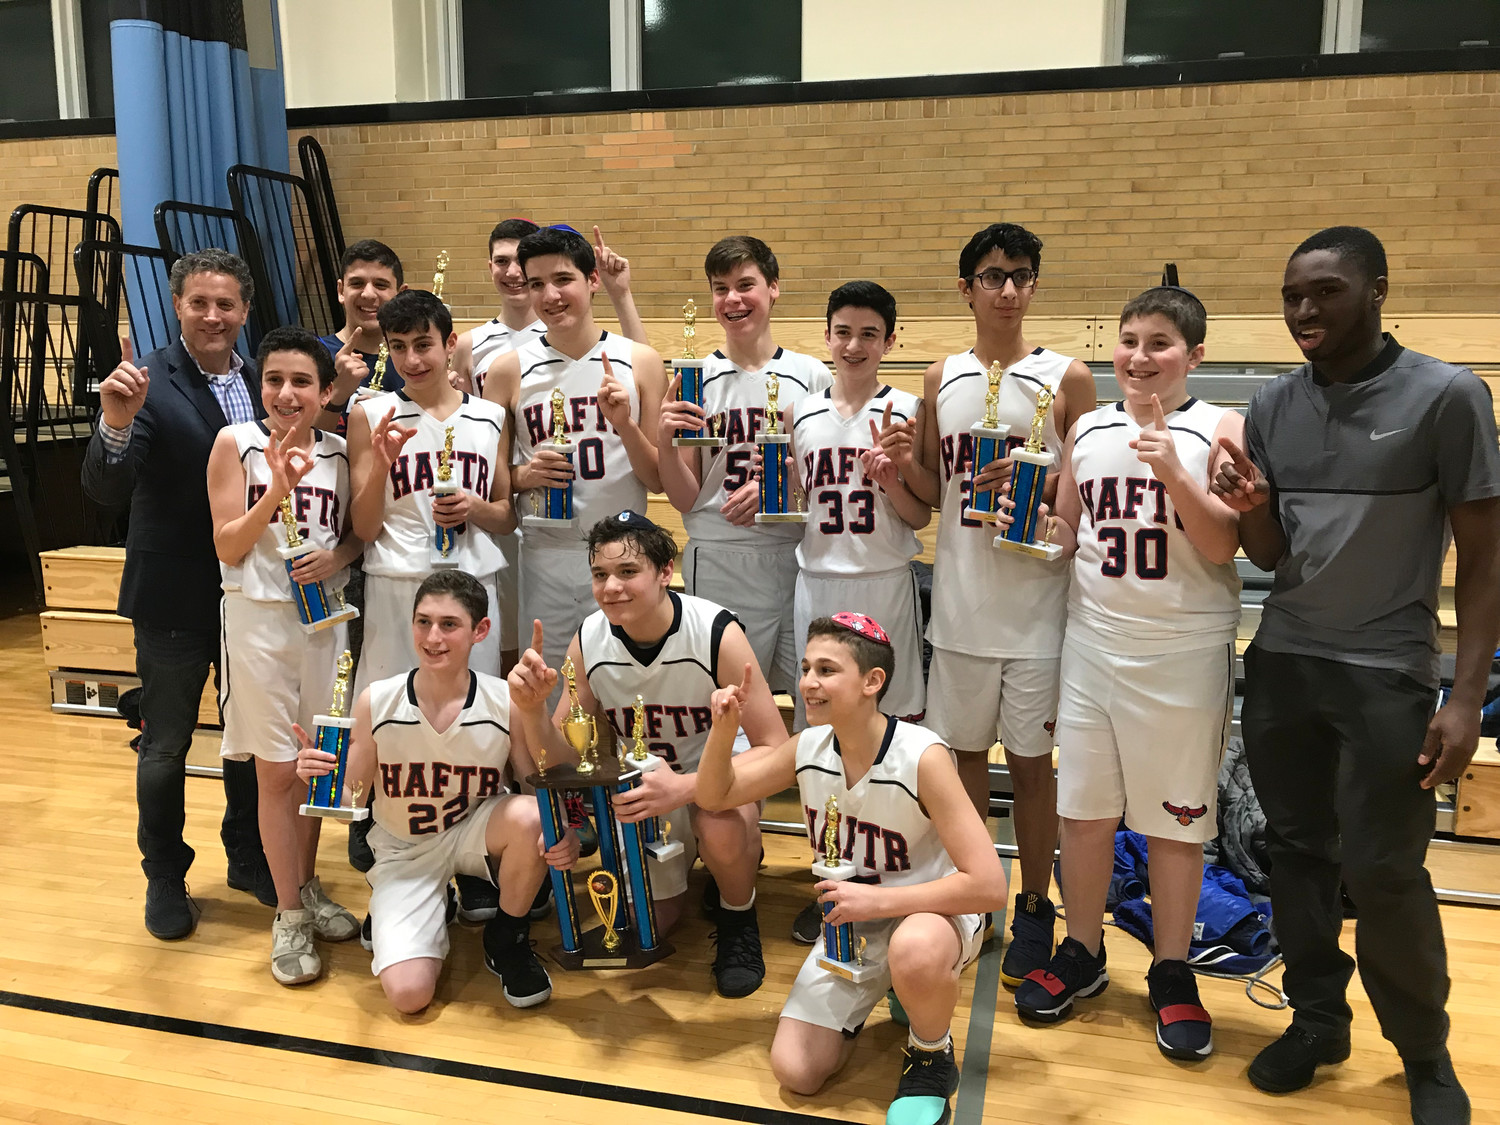 Both HAFTR Hawks hoops team claimed league titles this season. The boys squad with coaches Joey Hoenig at the far left and assistant Joel Samuel at the far right.